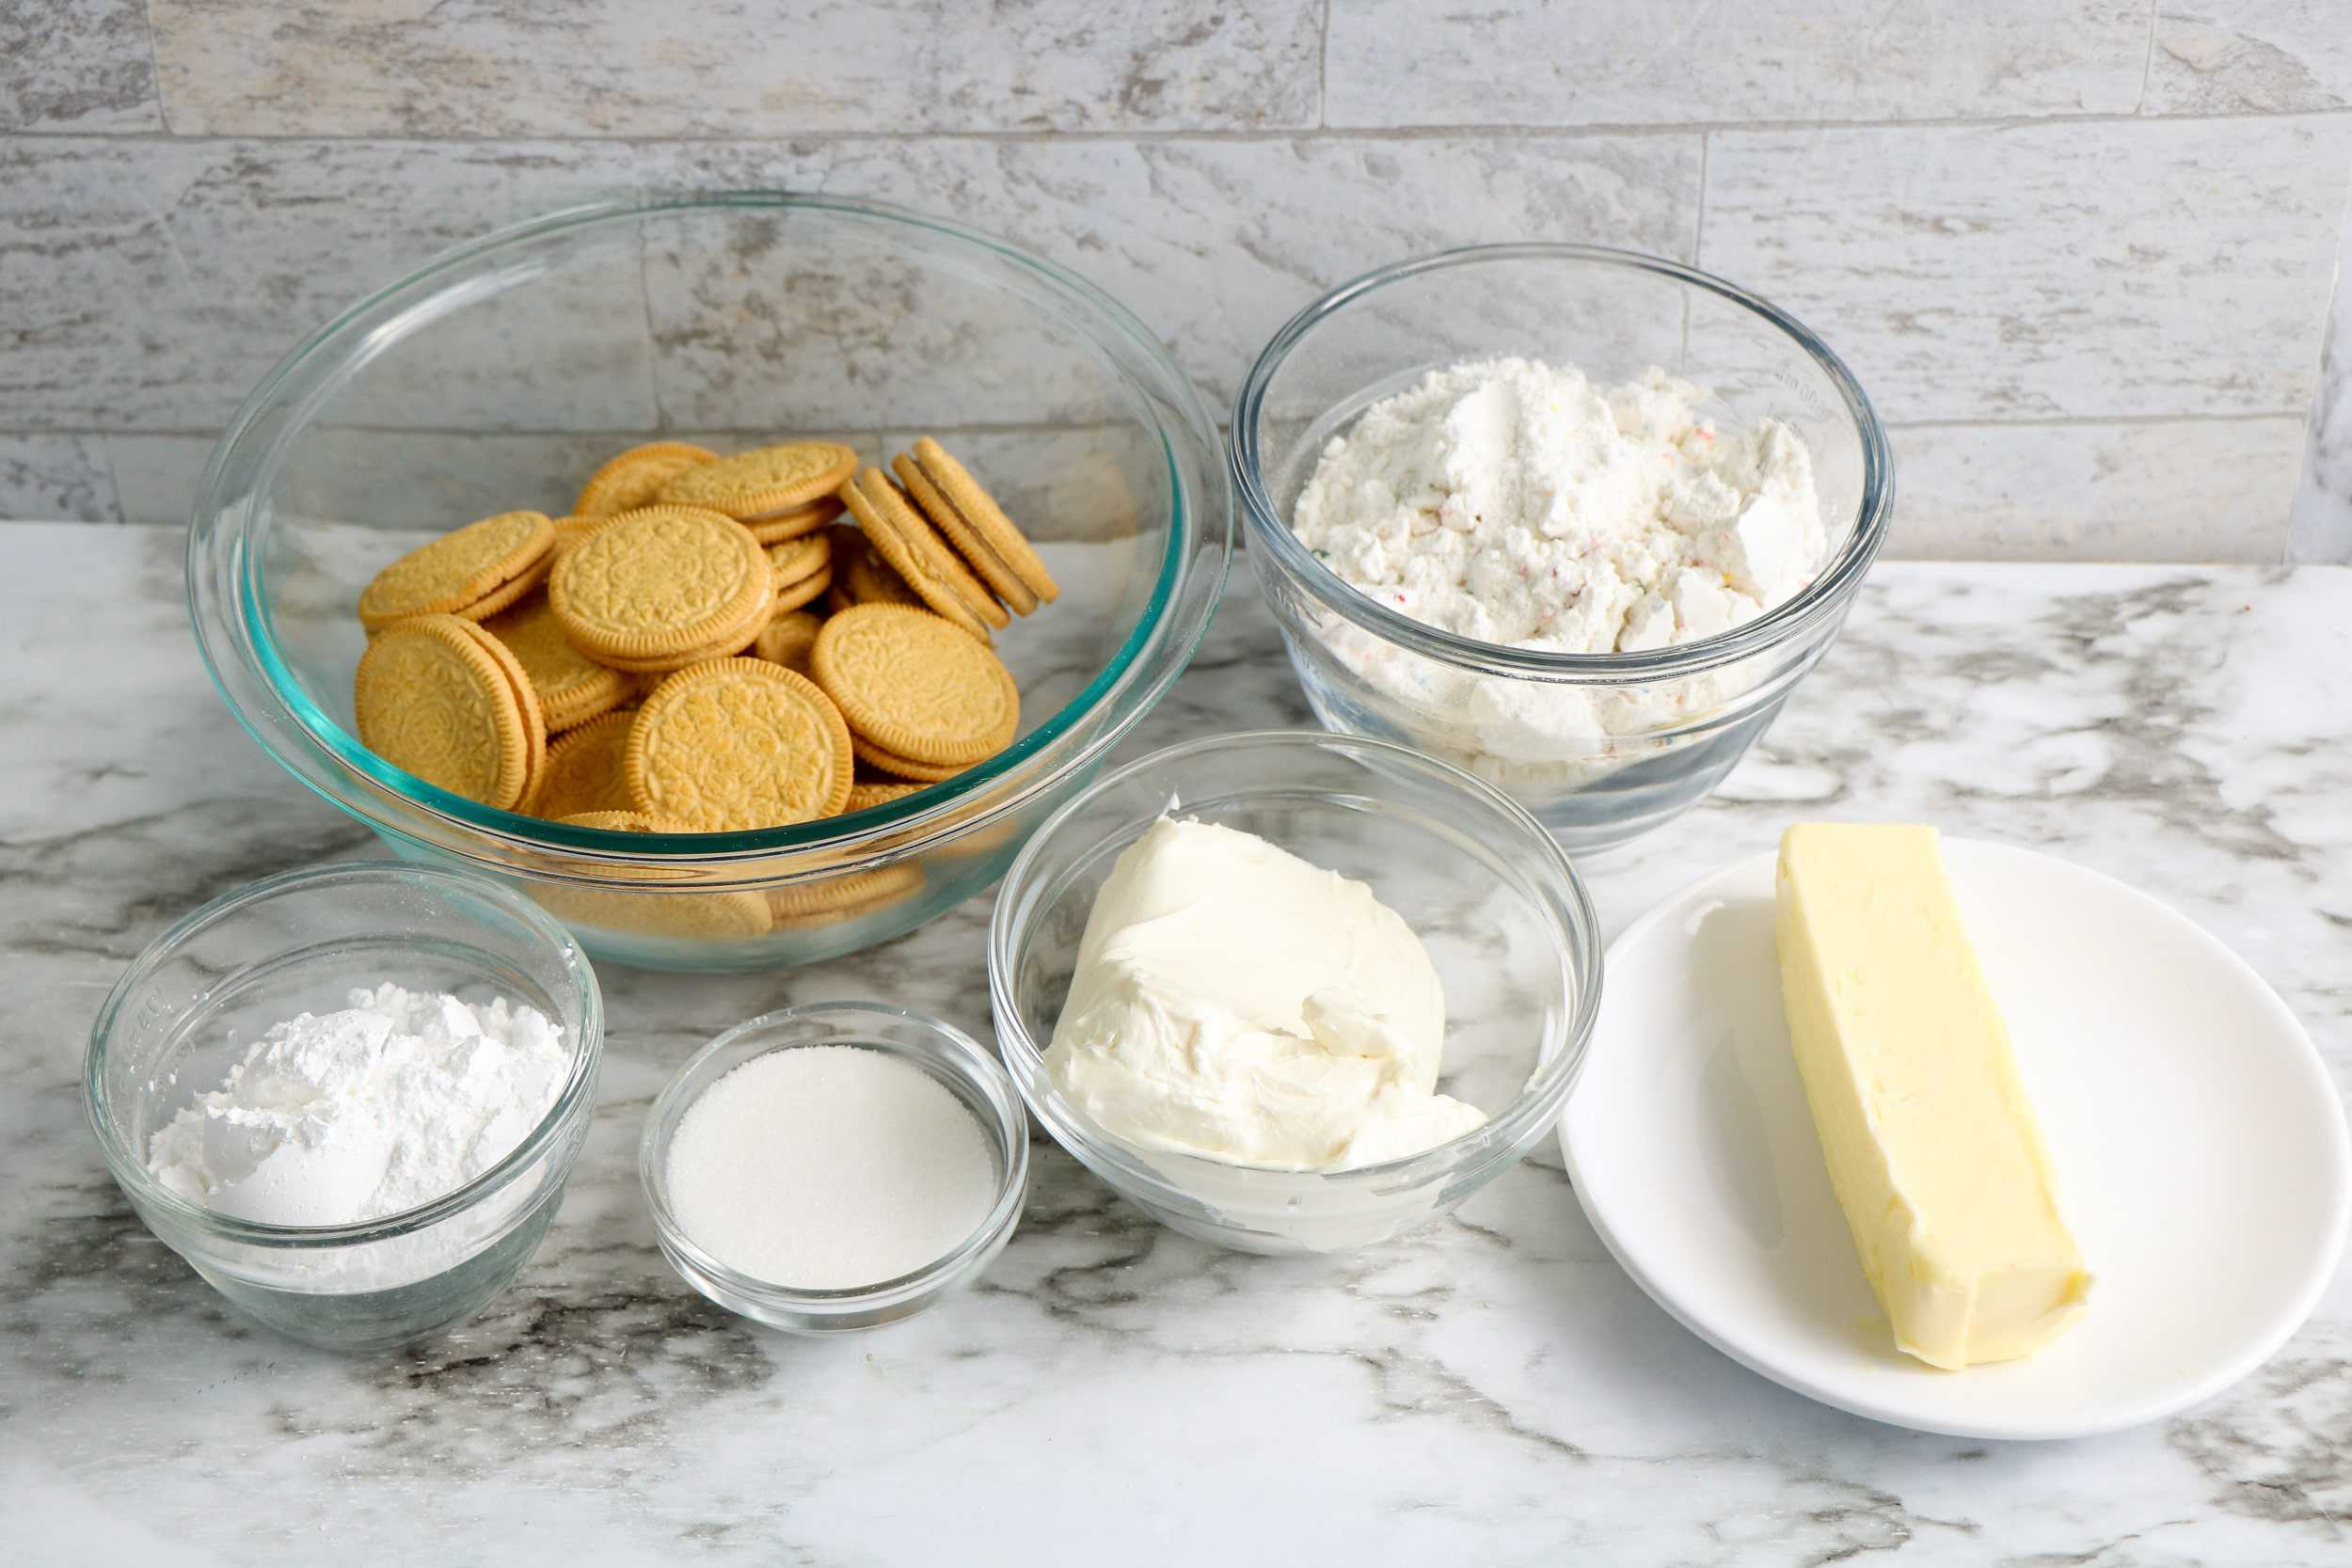 Ingredients for Funfetti Cheese ball